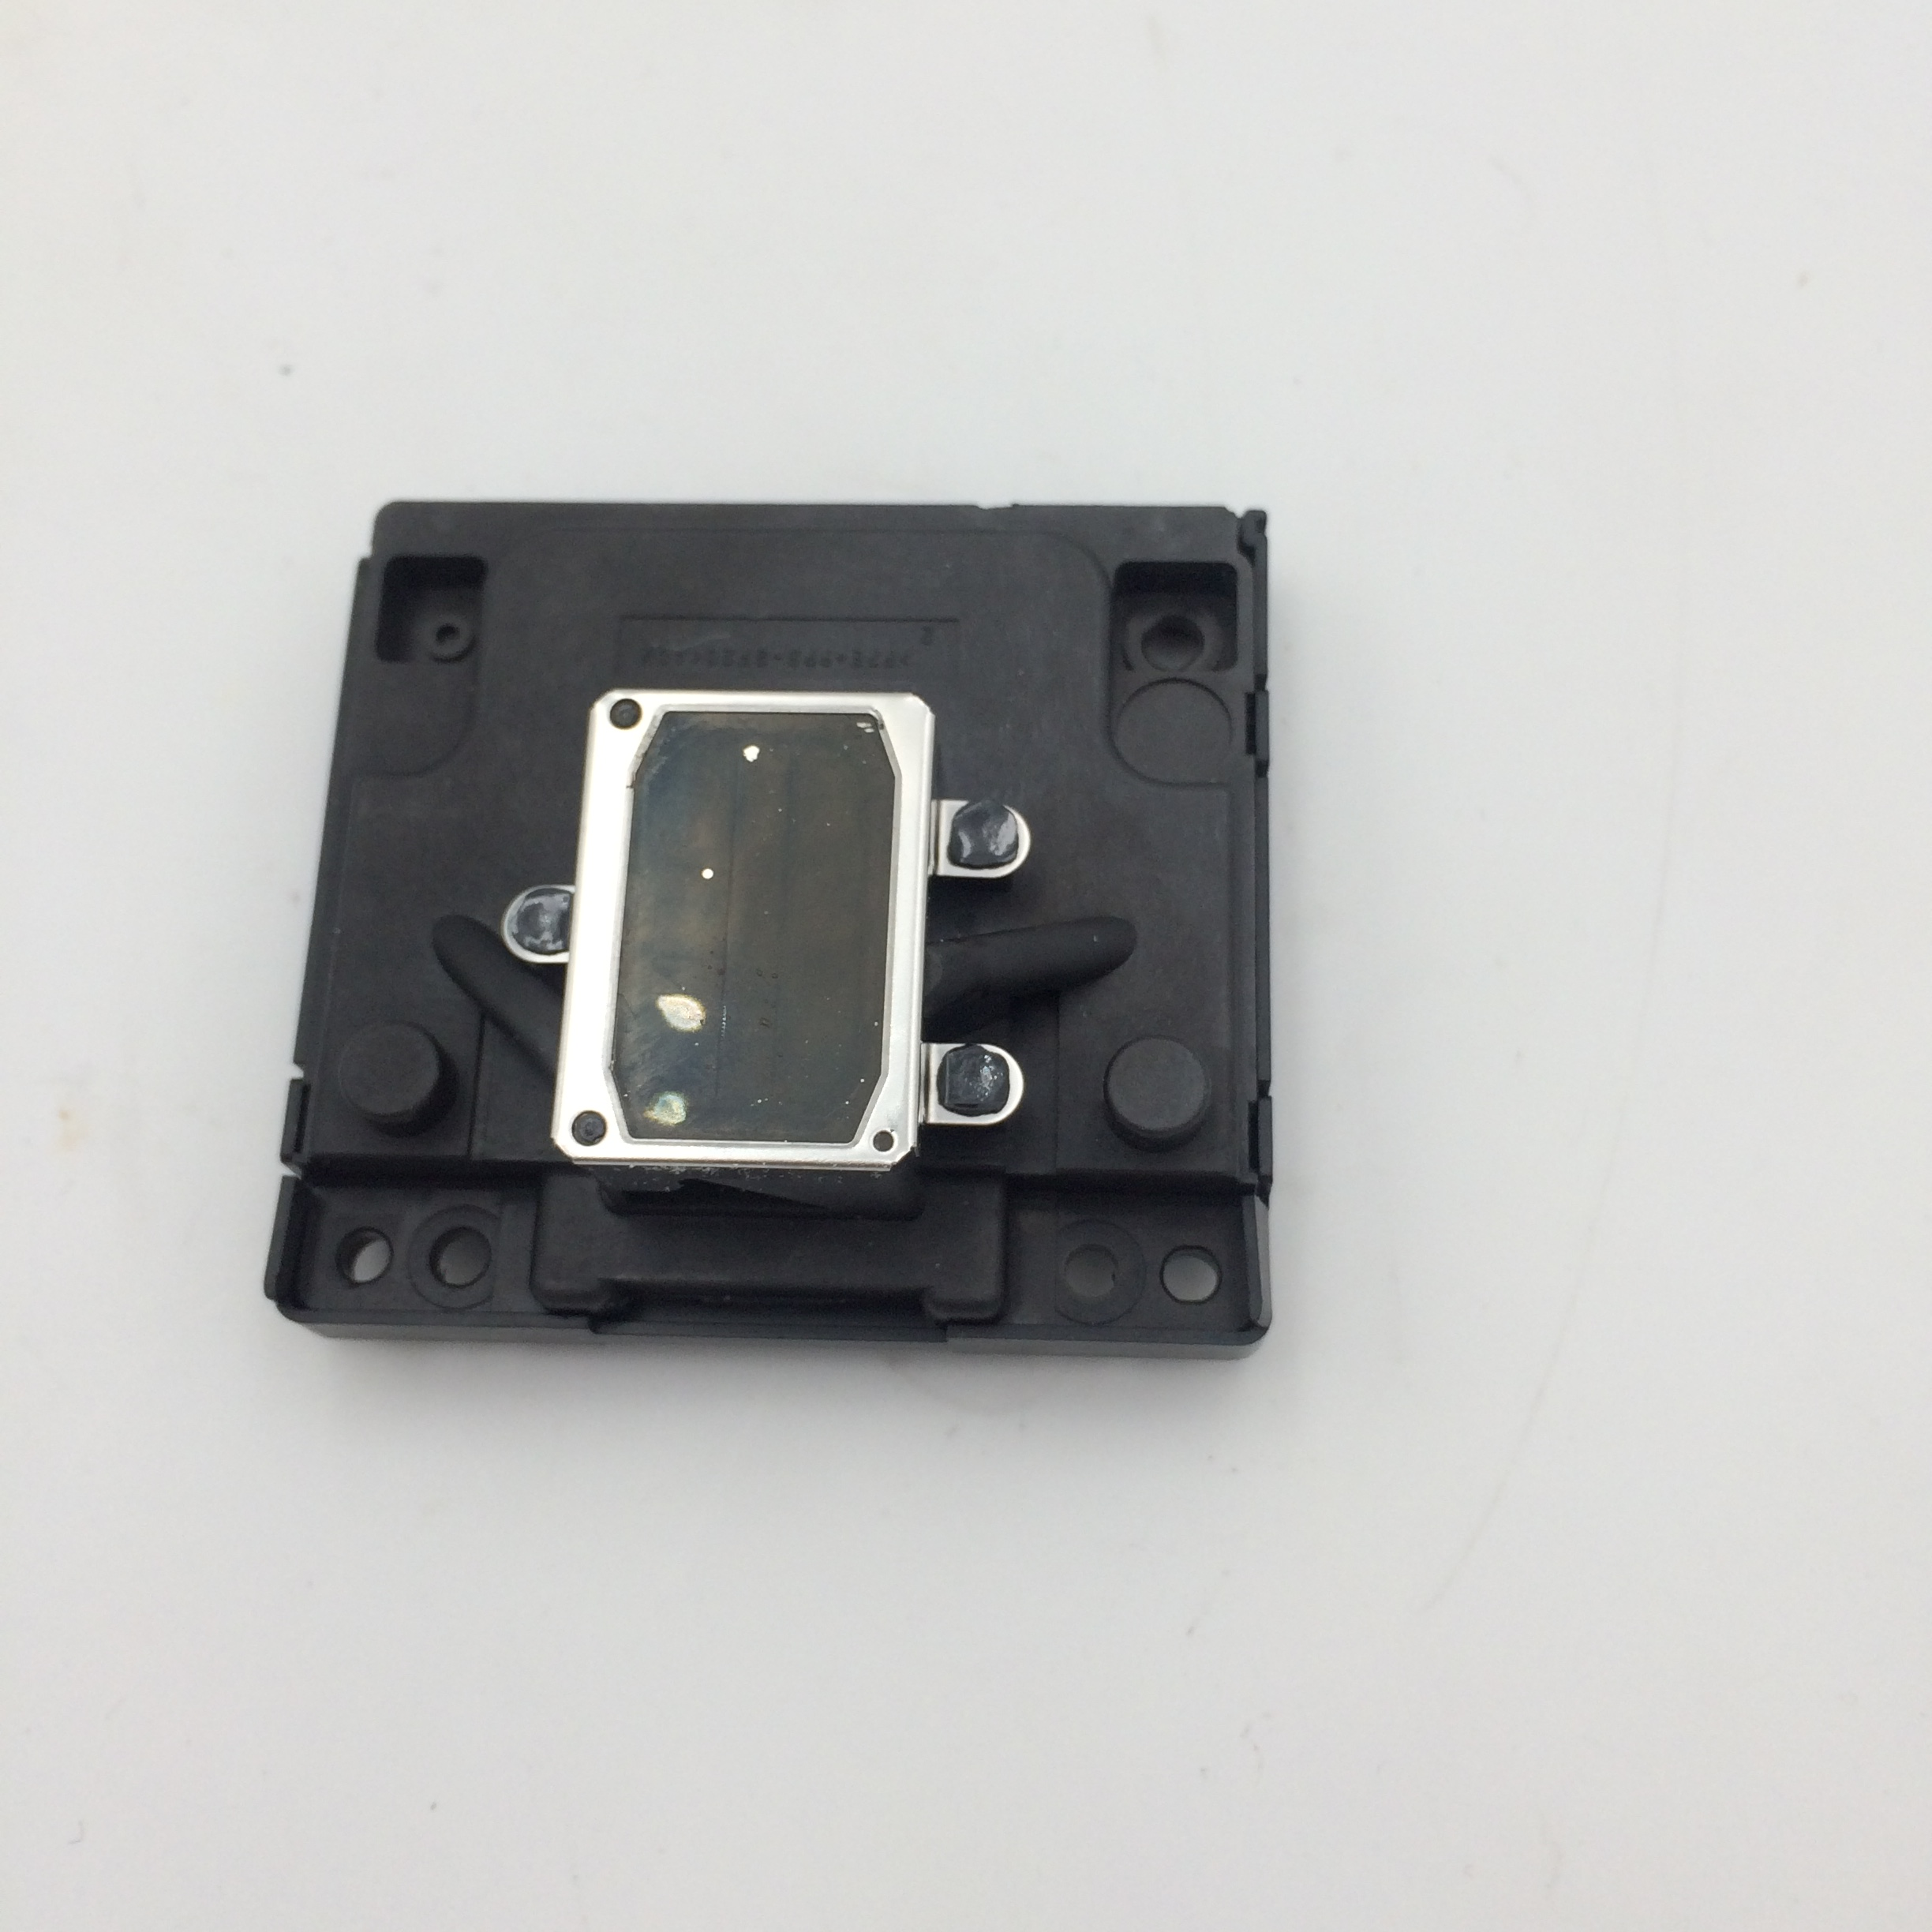 Print Head Compatible for <font><b>EPSON</b></font> T22 T25 TX135 SX125 TX300F <font><b>TX320F</b></font> TX130 TX120 BX300 BX305 SX235 SX130 Printer head image